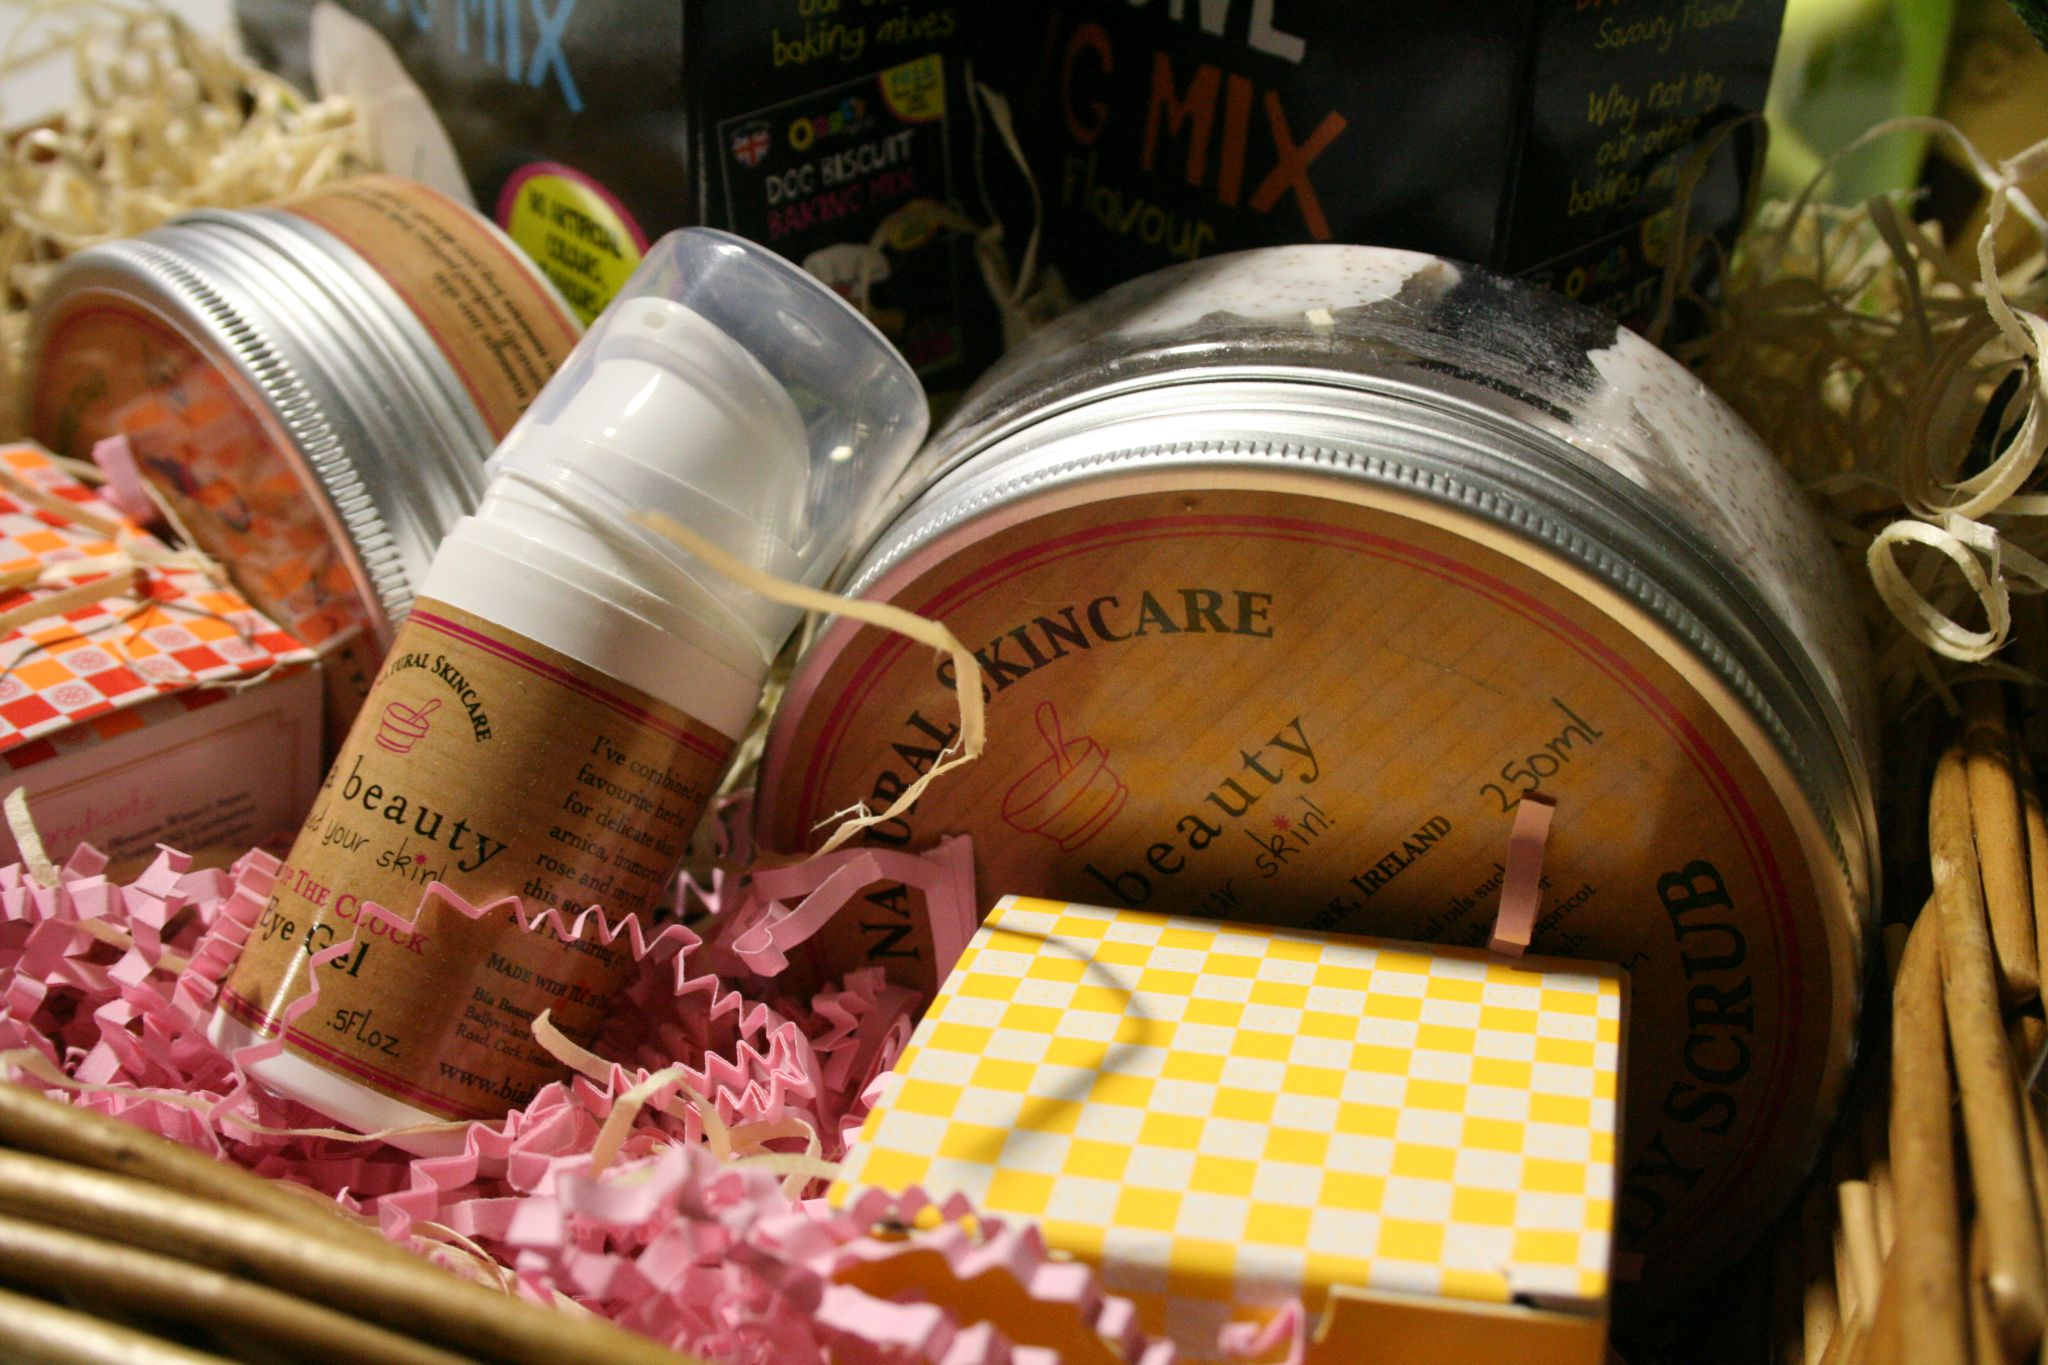 pamper products for guys